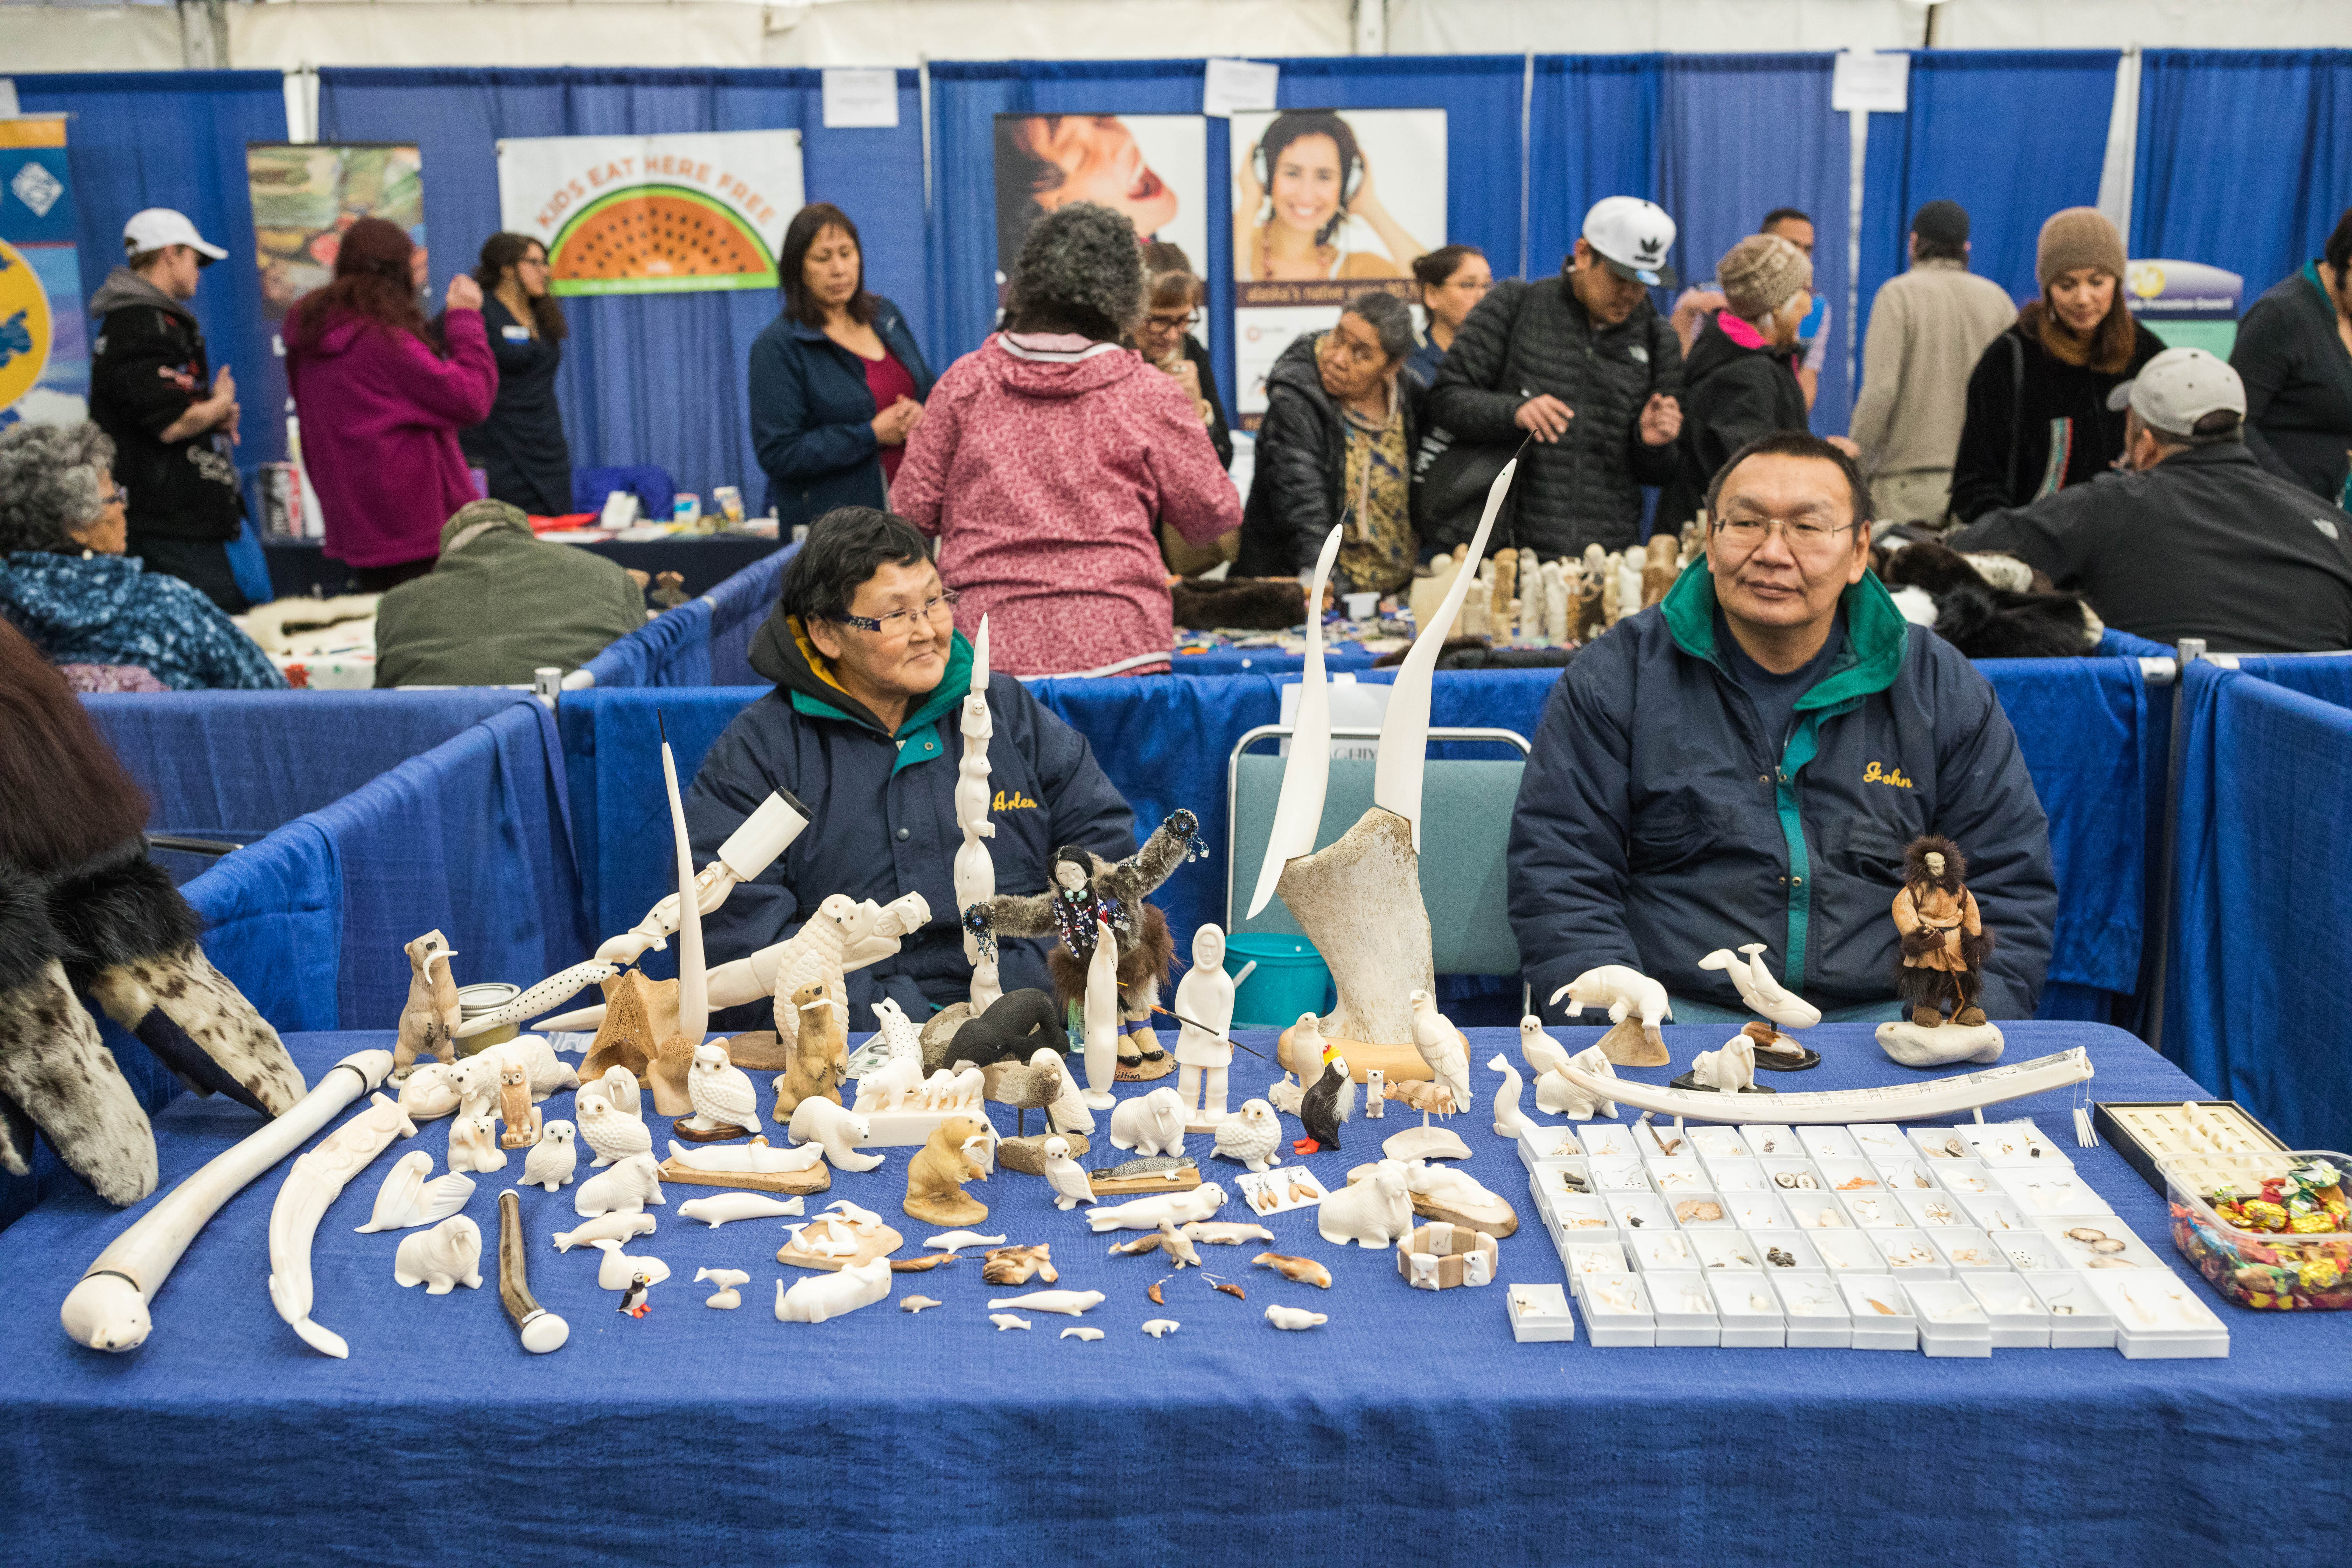 Arlene and John Waghiyi offer St. Lawrence Island walrus ivory carvings for sale in the arts and crafts tent at the Alaska Federation of Natives conference in Fairbanks on Thursday, Oct. 20, 2016. (Loren Holmes / Alaska Dispatch News)